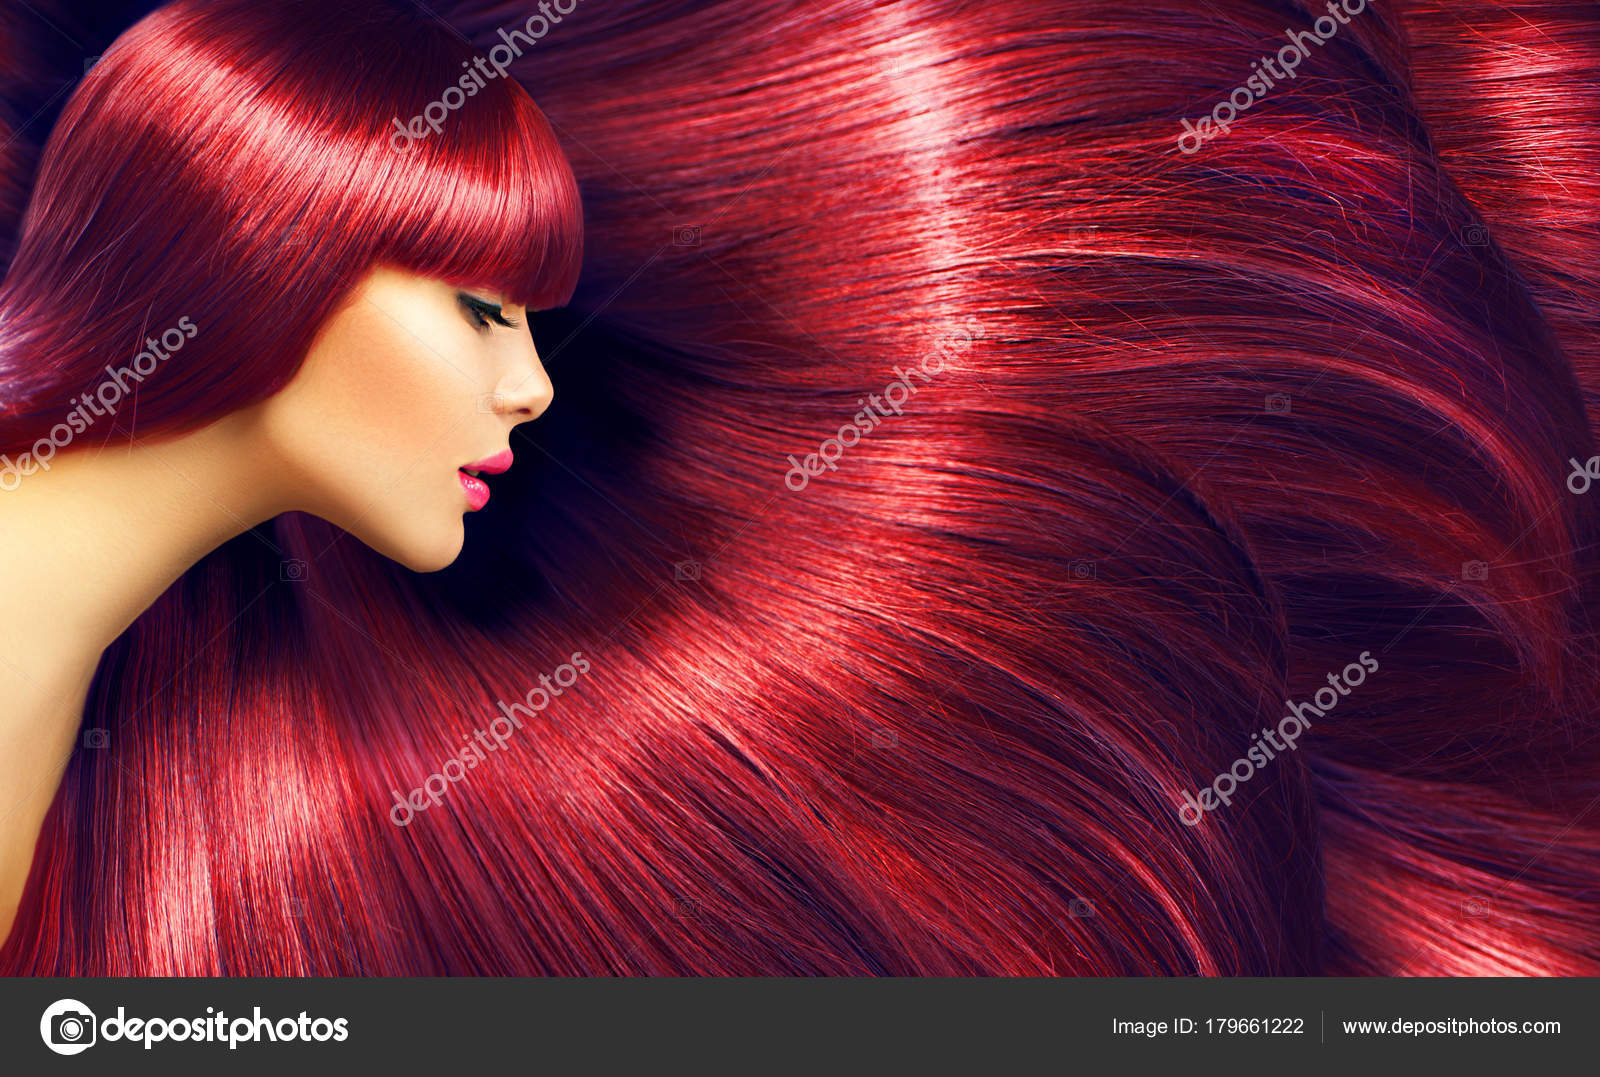 Pictures Black Hair With Burgundy Highlights Woman